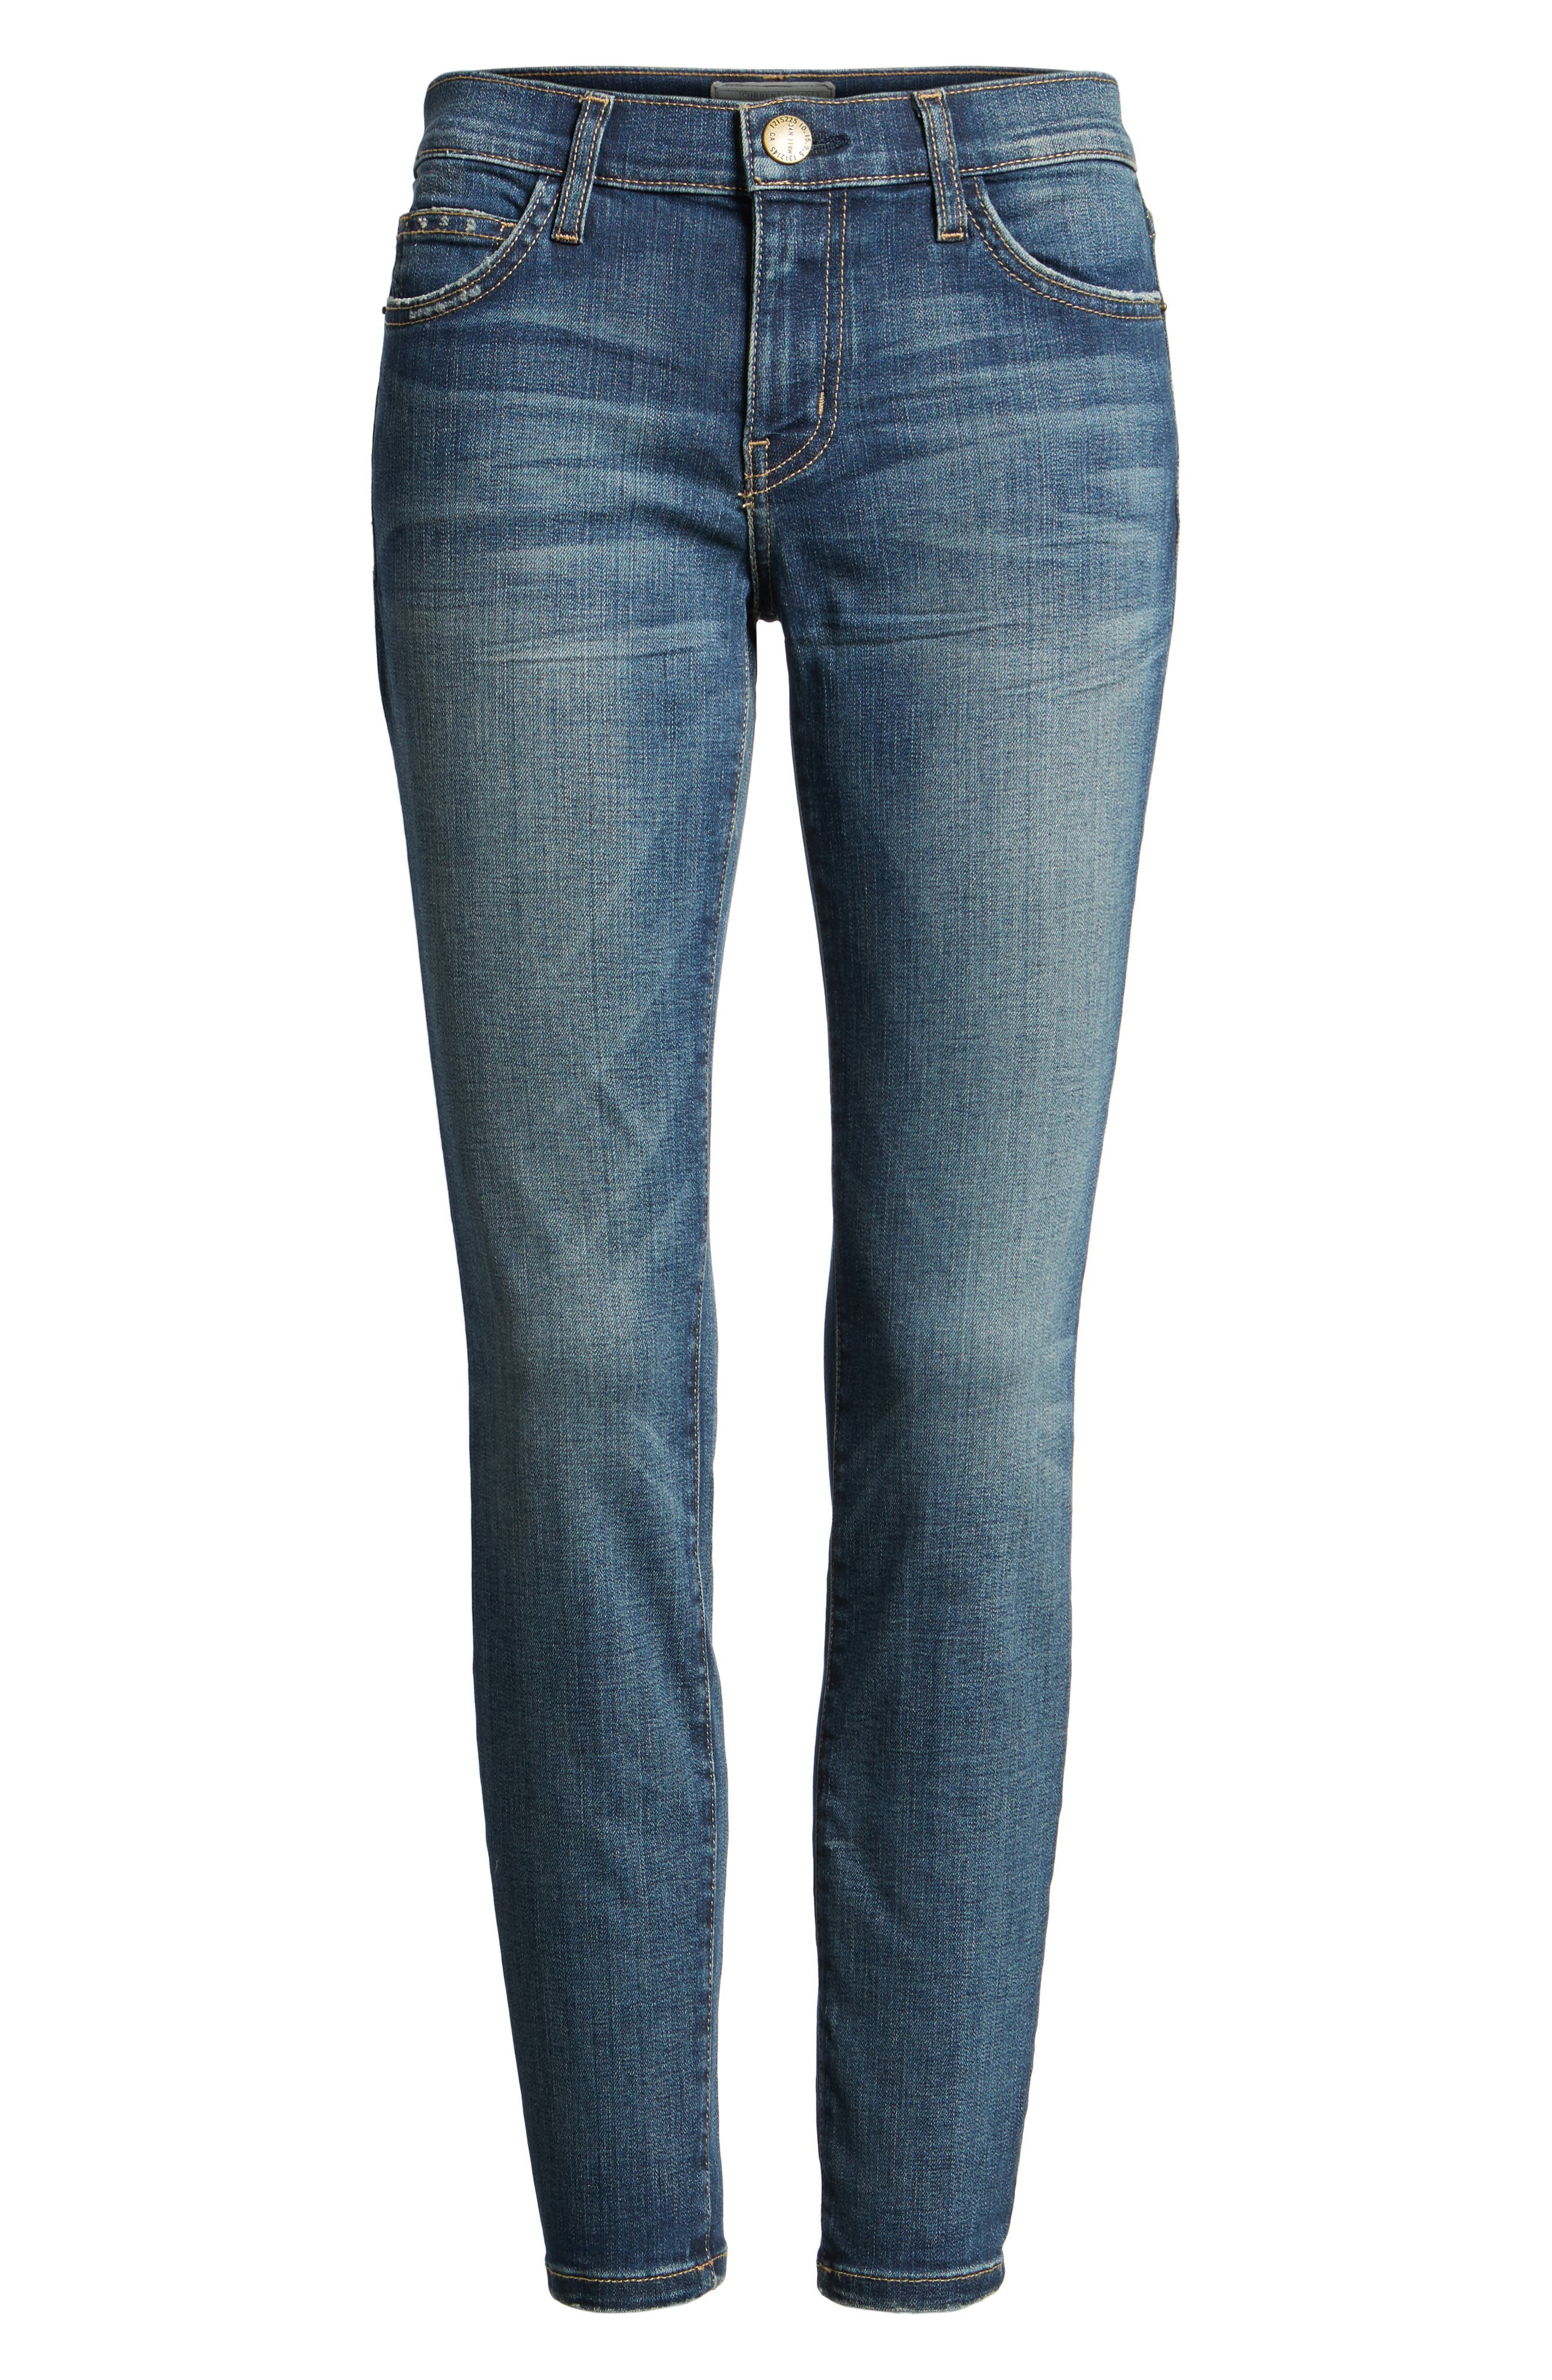 'The Stiletto' Stretch Jeans,                             Alternate thumbnail 7, color,                             477